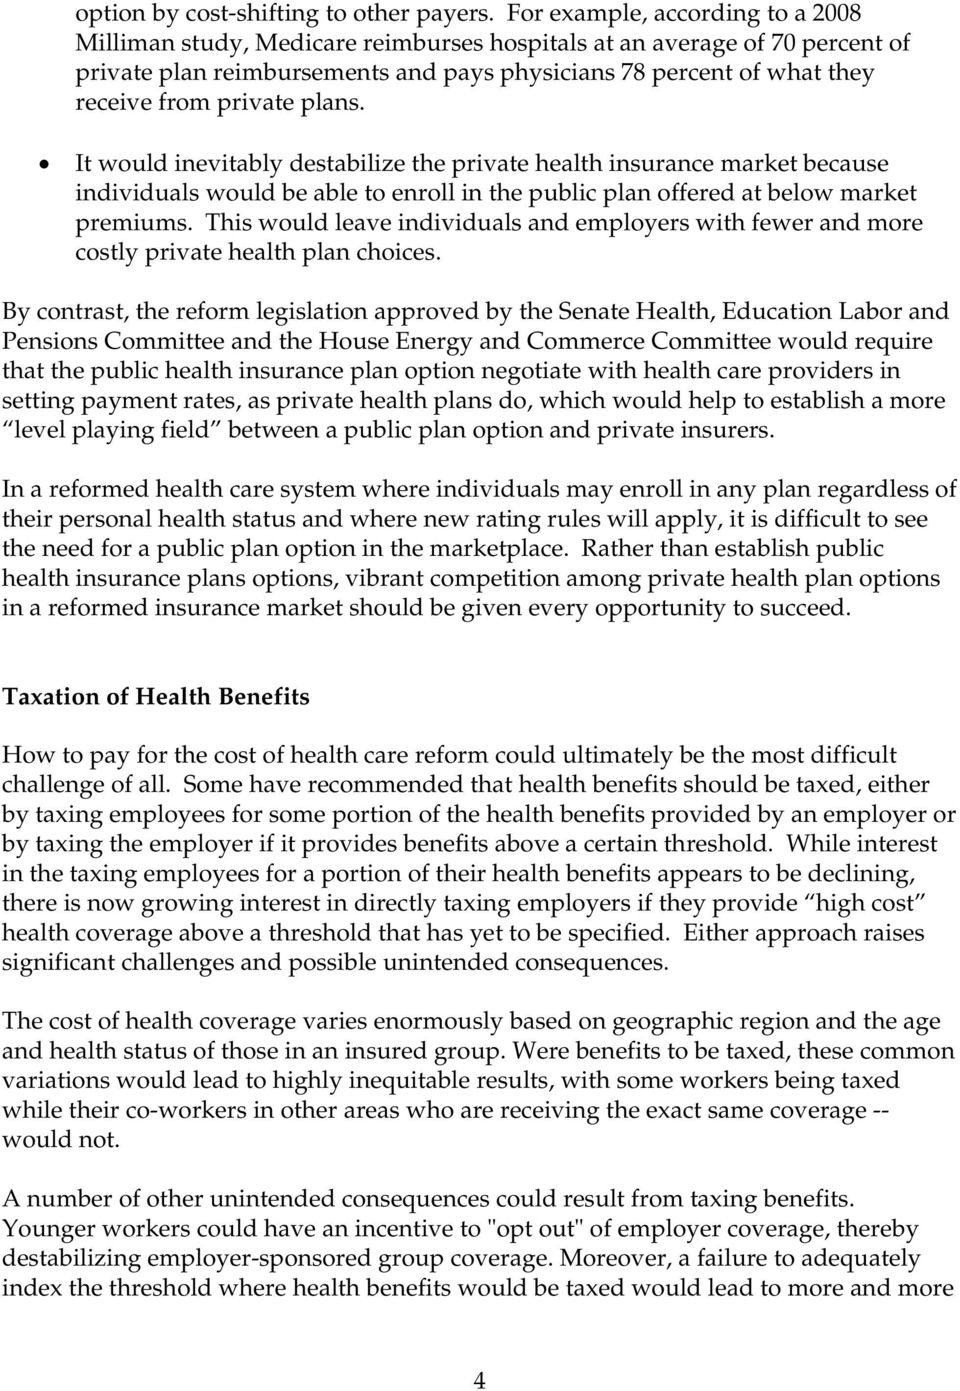 private plans. It would inevitably destabilize the private health insurance market because individuals would be able to enroll in the public plan offered at below market premiums.